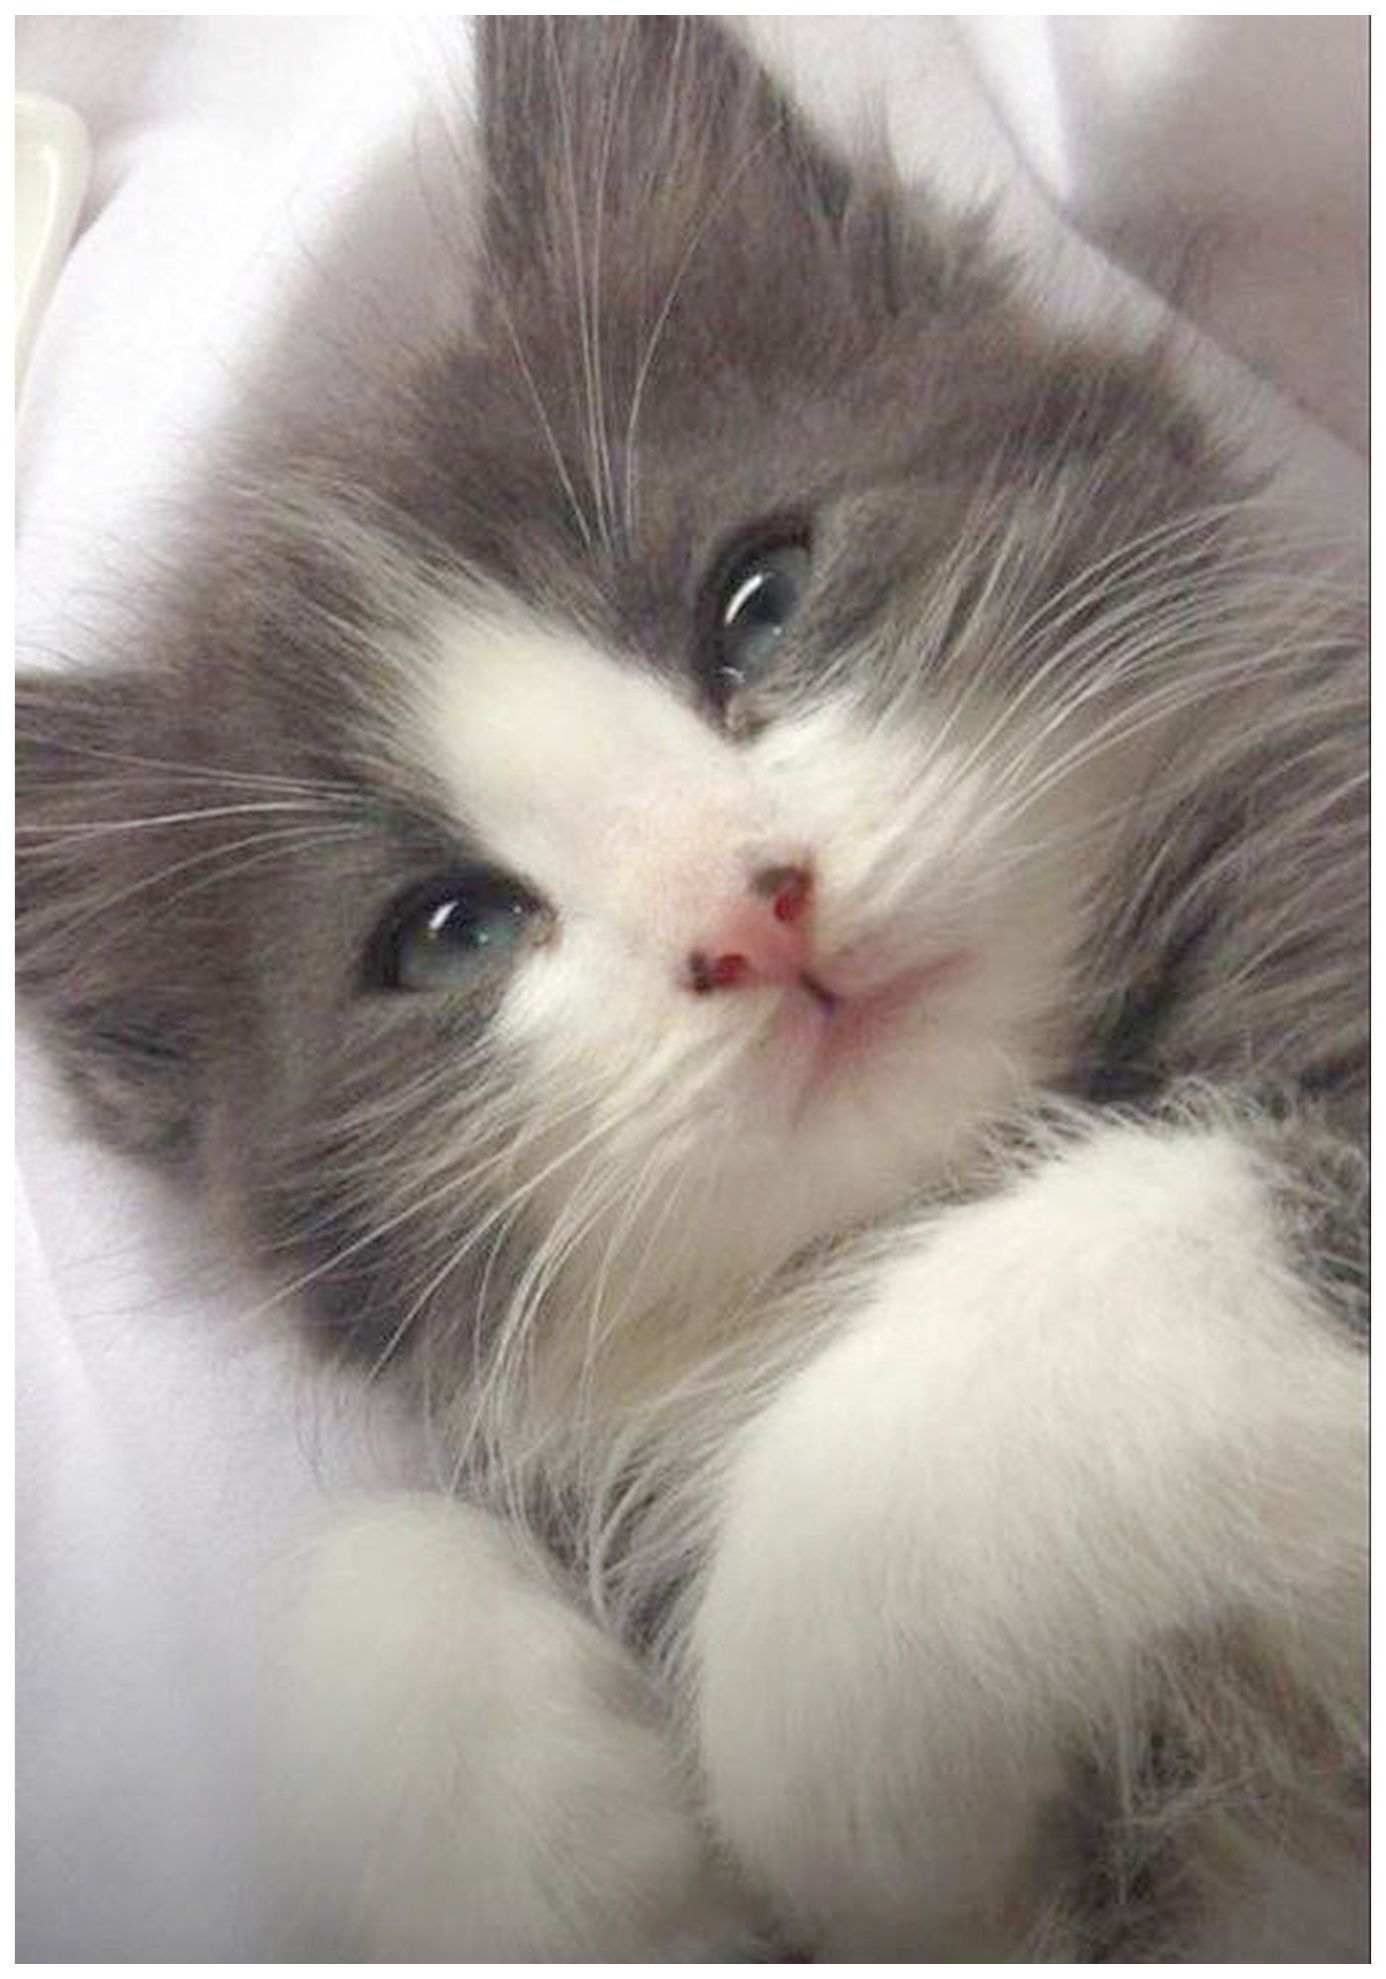 Cute Gif Of Animals Provided Cute Animals To Draw Black And White Cats And Kittens Meowing Non Stop An Kitten Pictures Cute Cats And Kittens Kittens Cutest